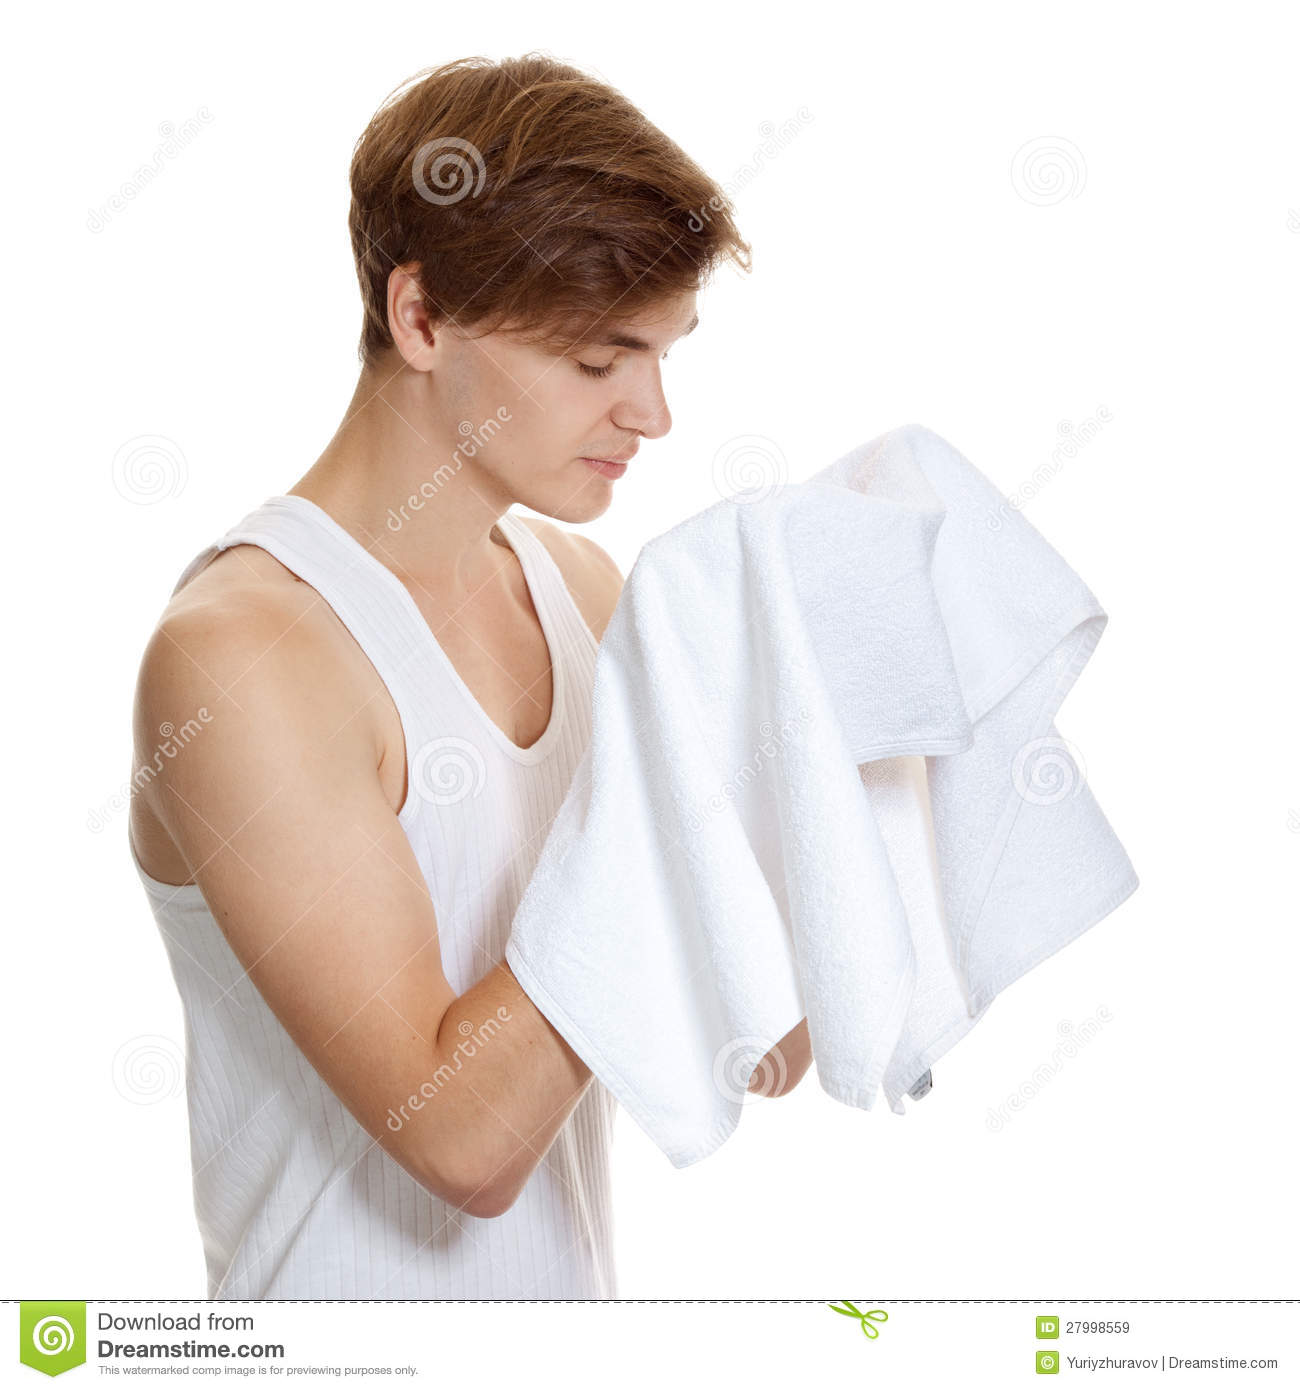 Man Holding A Towel Isolated Stock Image